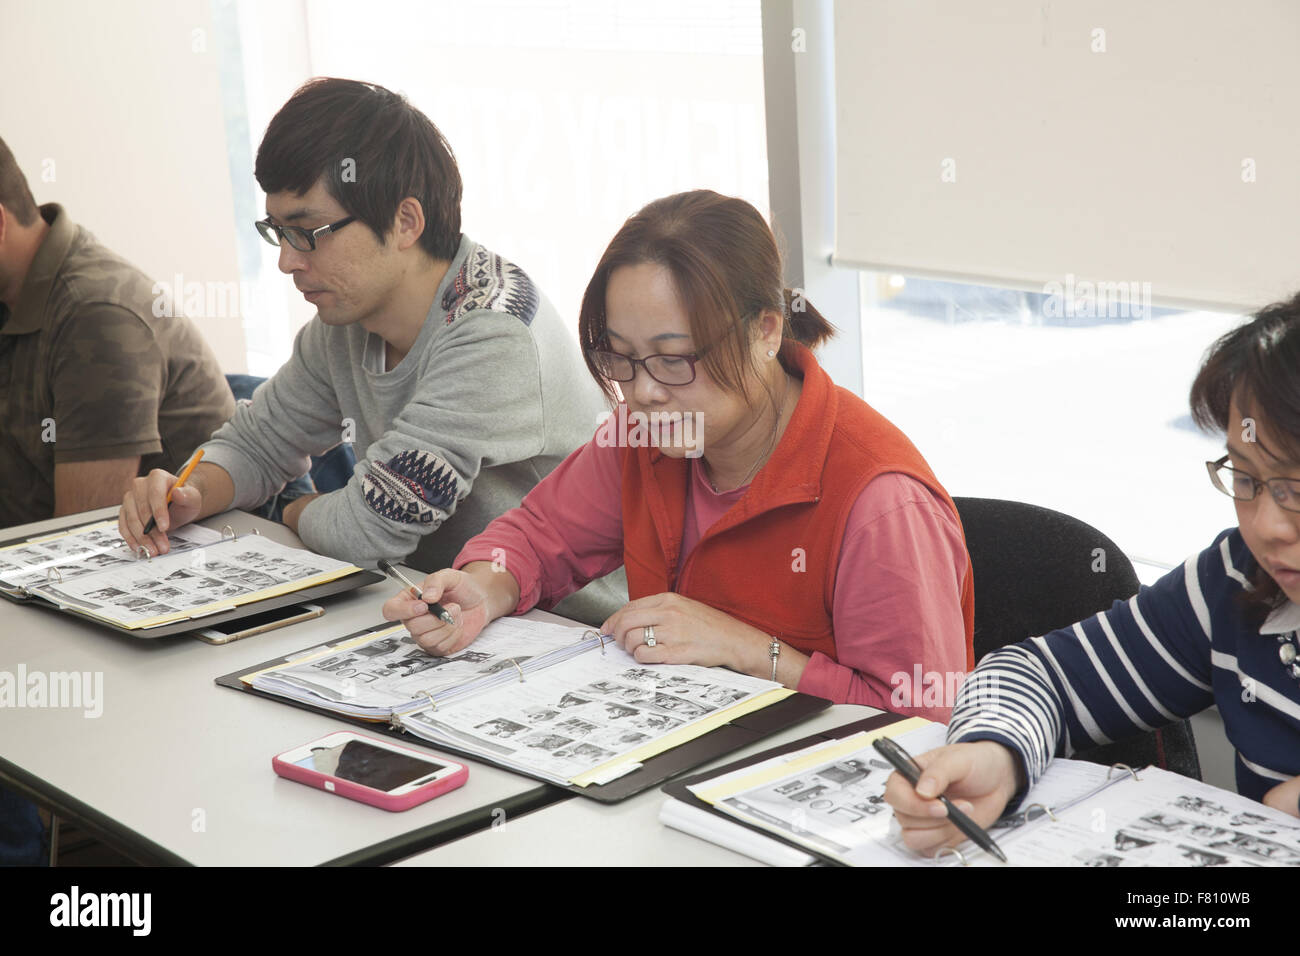 legal immigrants in new york city take free english classes at a